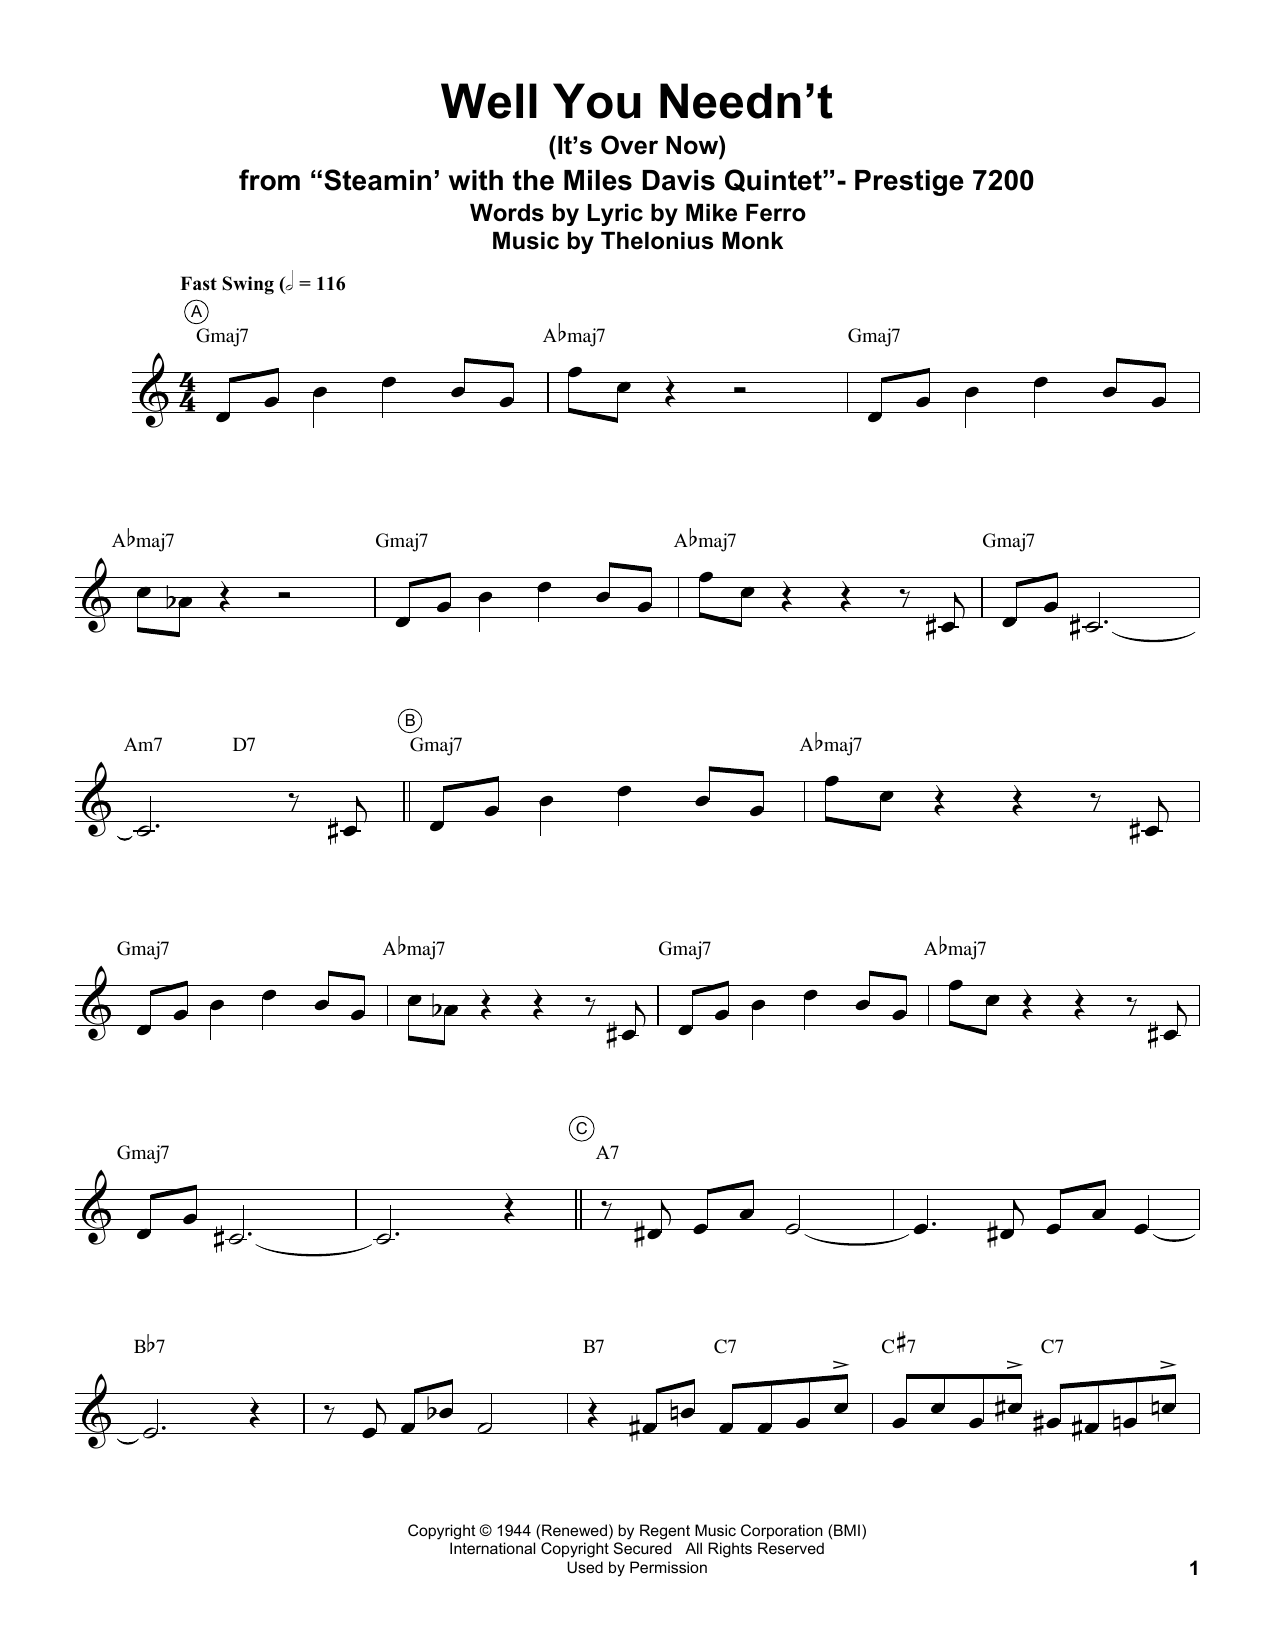 Well You Needn't (It's Over Now) Sheet Music